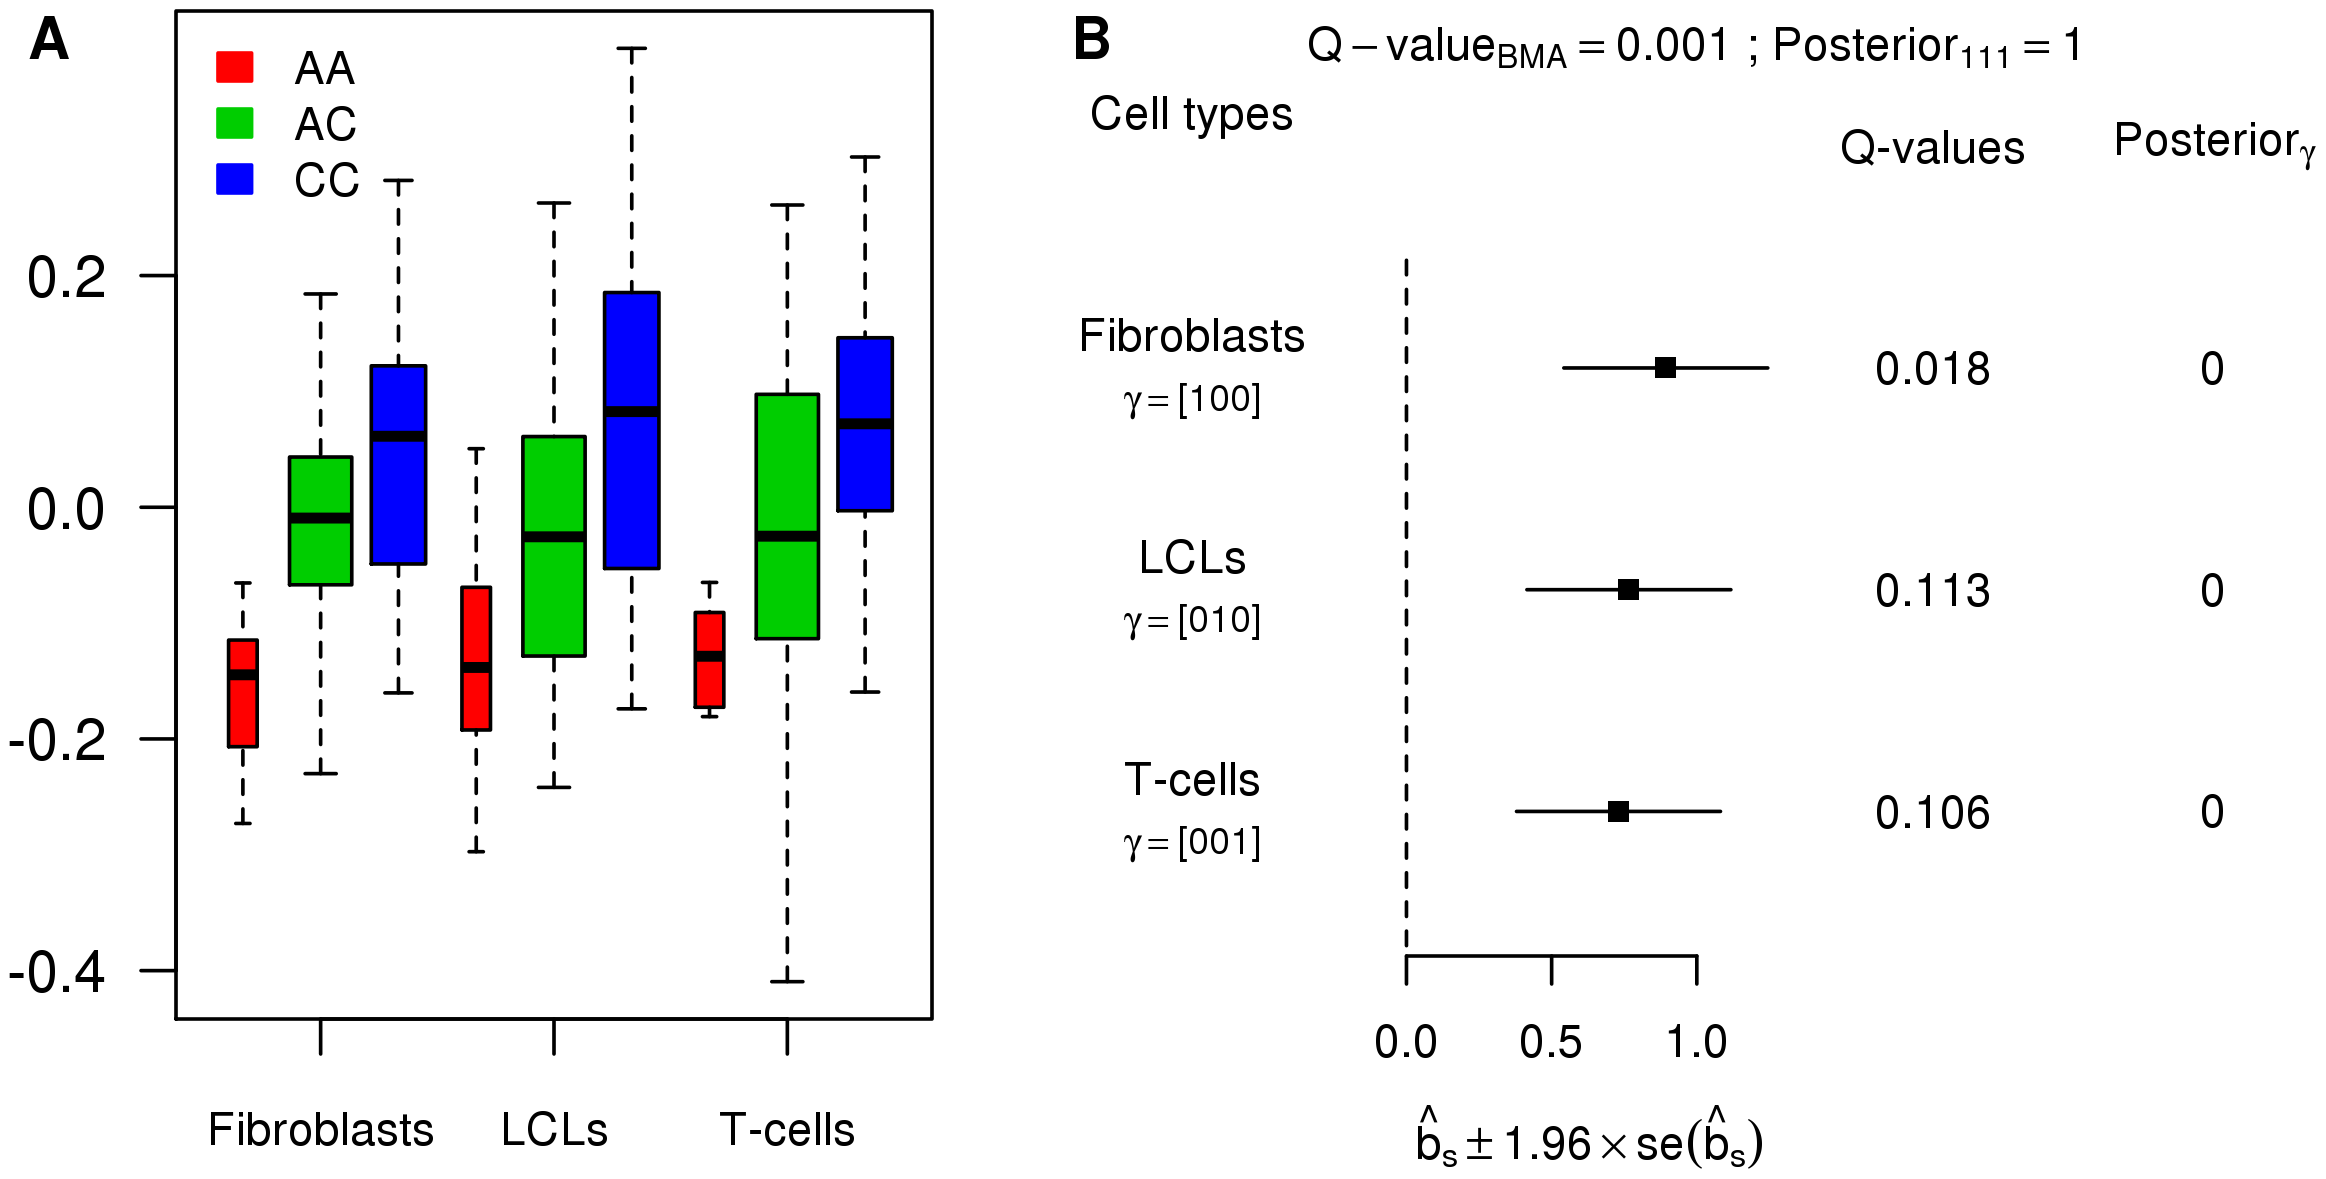 Example of an eQTL wrongly called as tissue-specific by the tissue-by-tissue analysis.